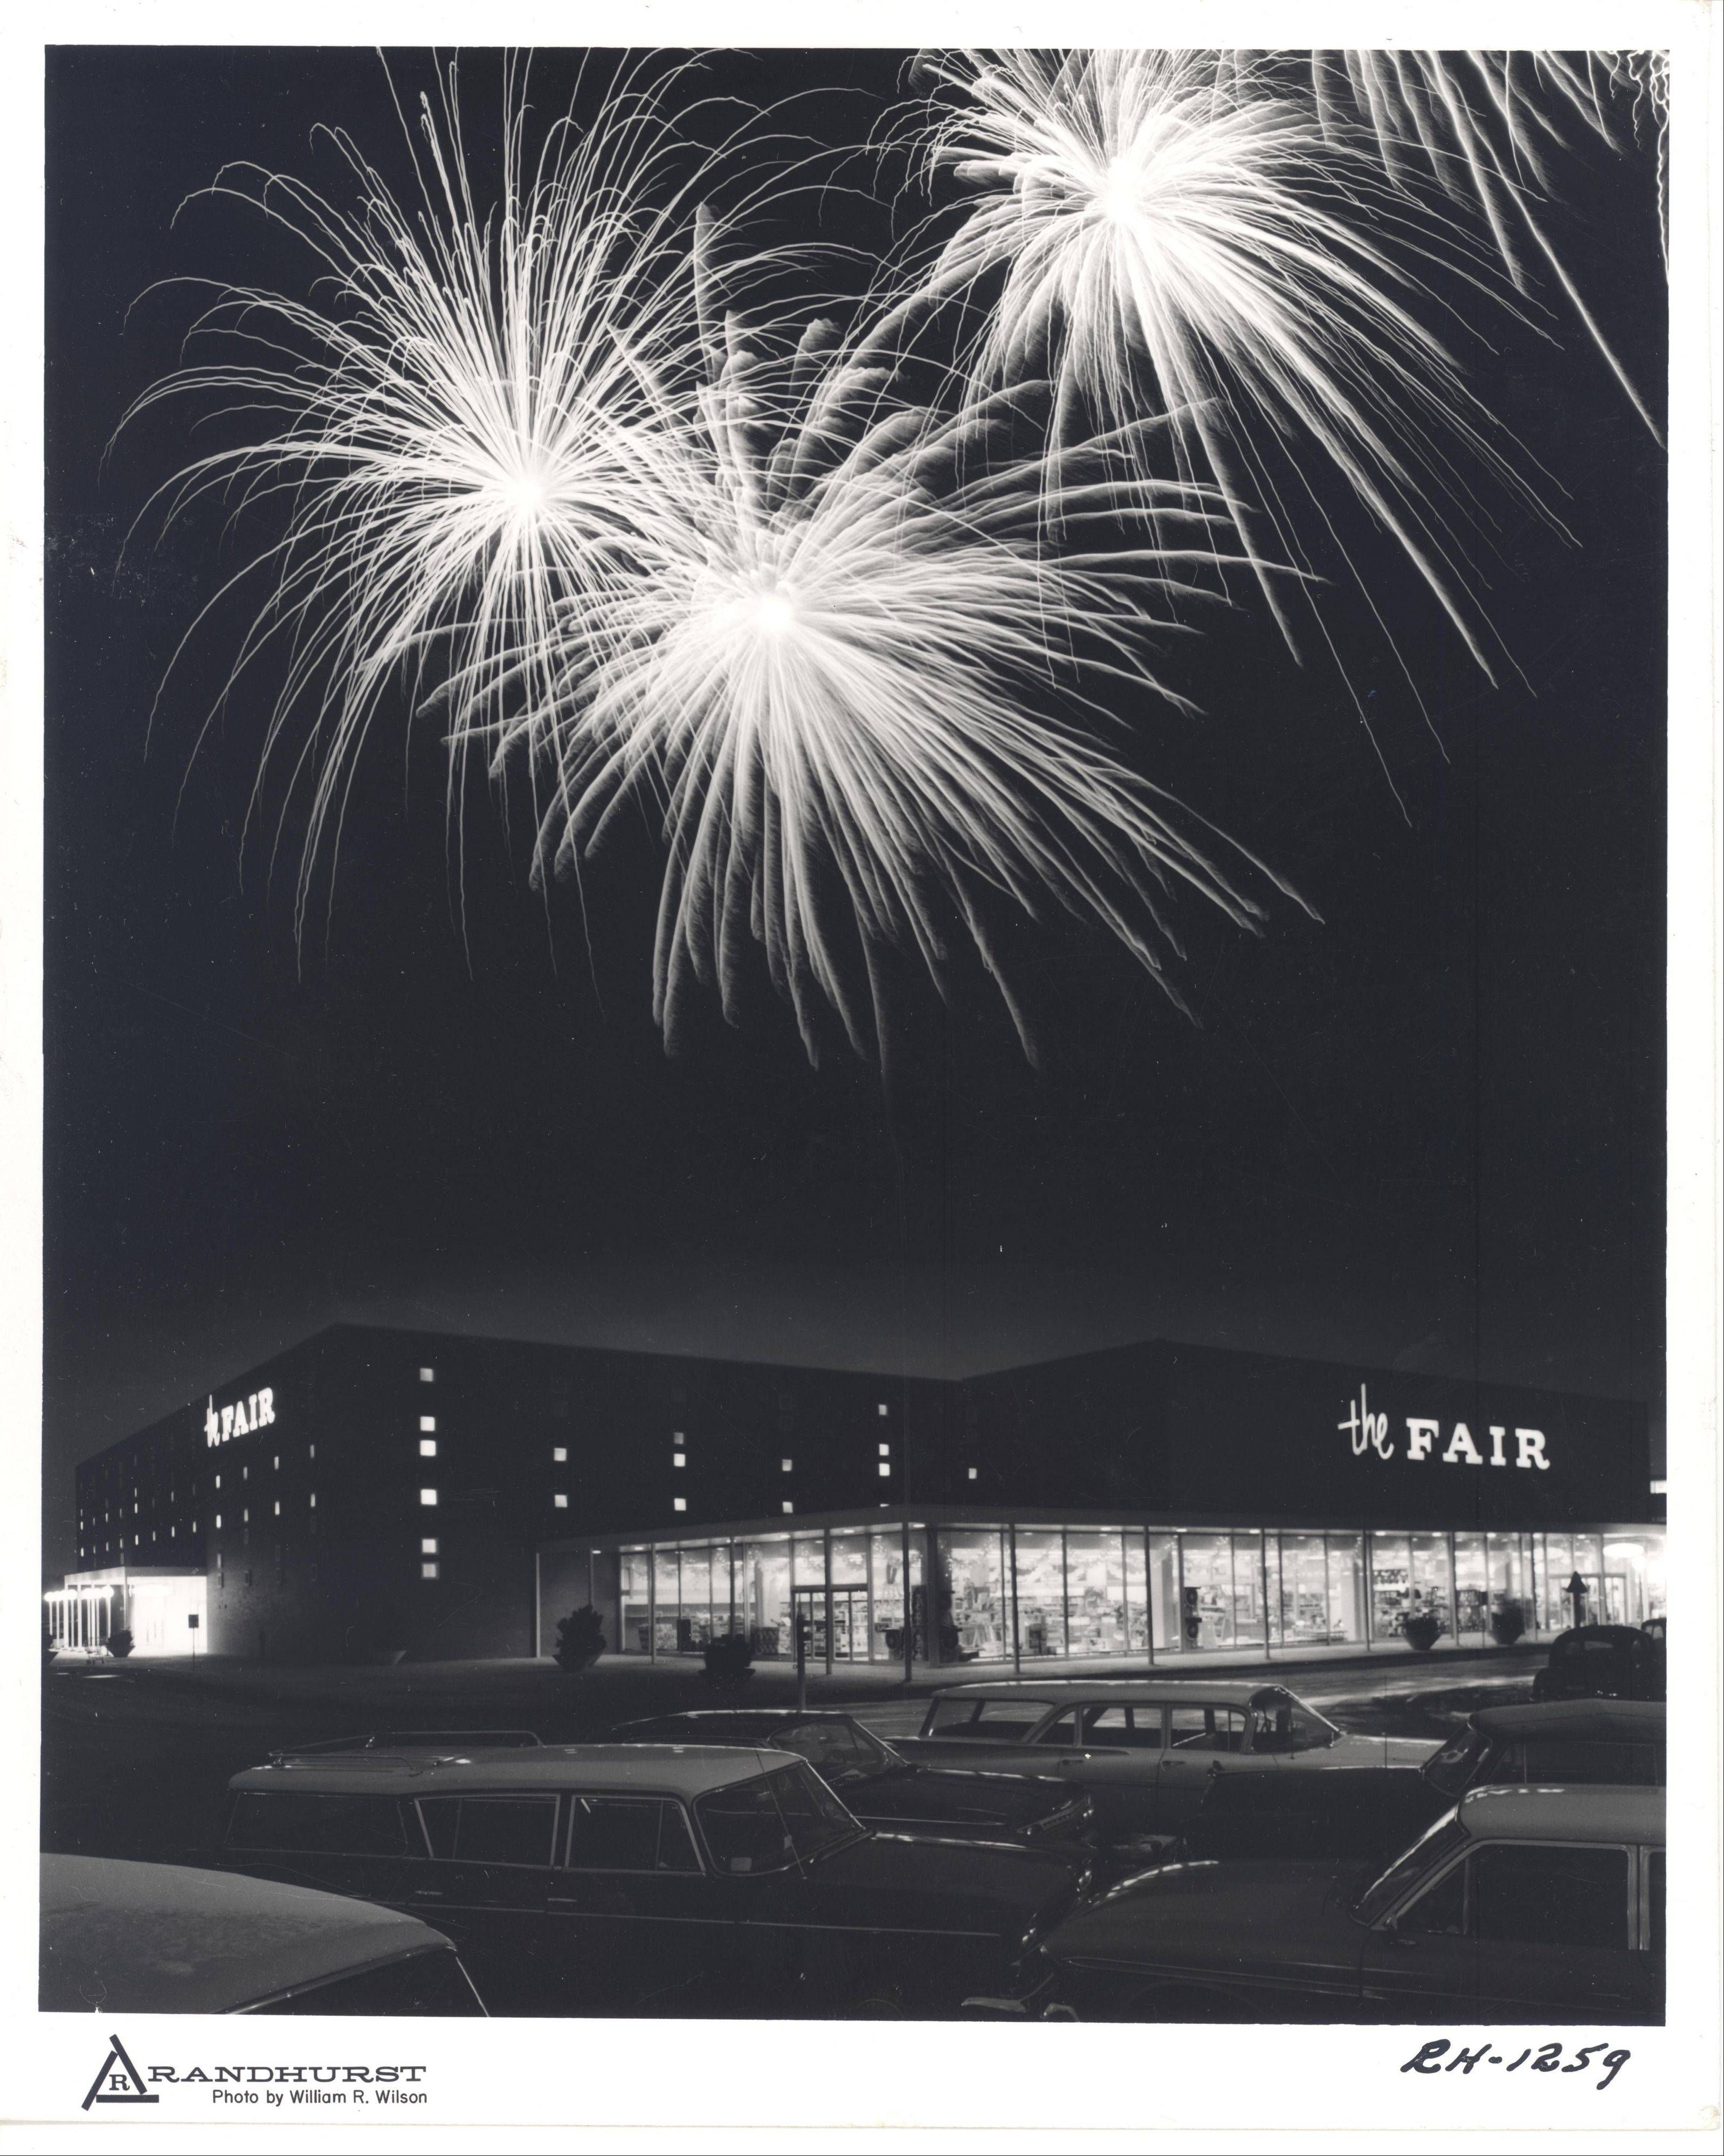 Fireworks go off by the Fair department store, one of the original anchor stores at Randhurst.